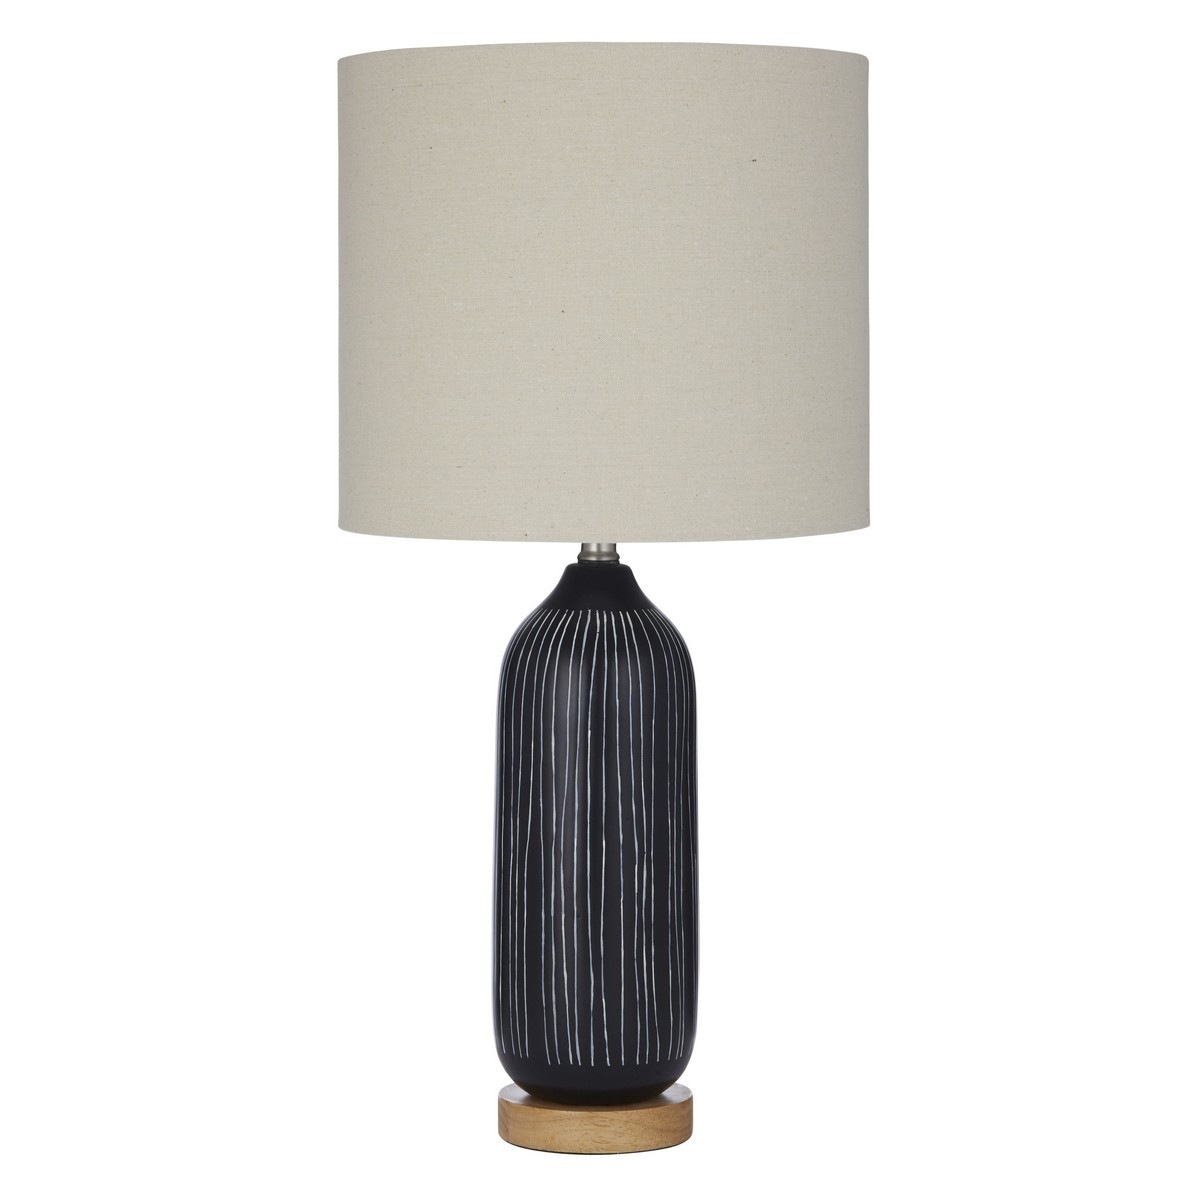 Everett Ceramic Base Table Lamp, Black